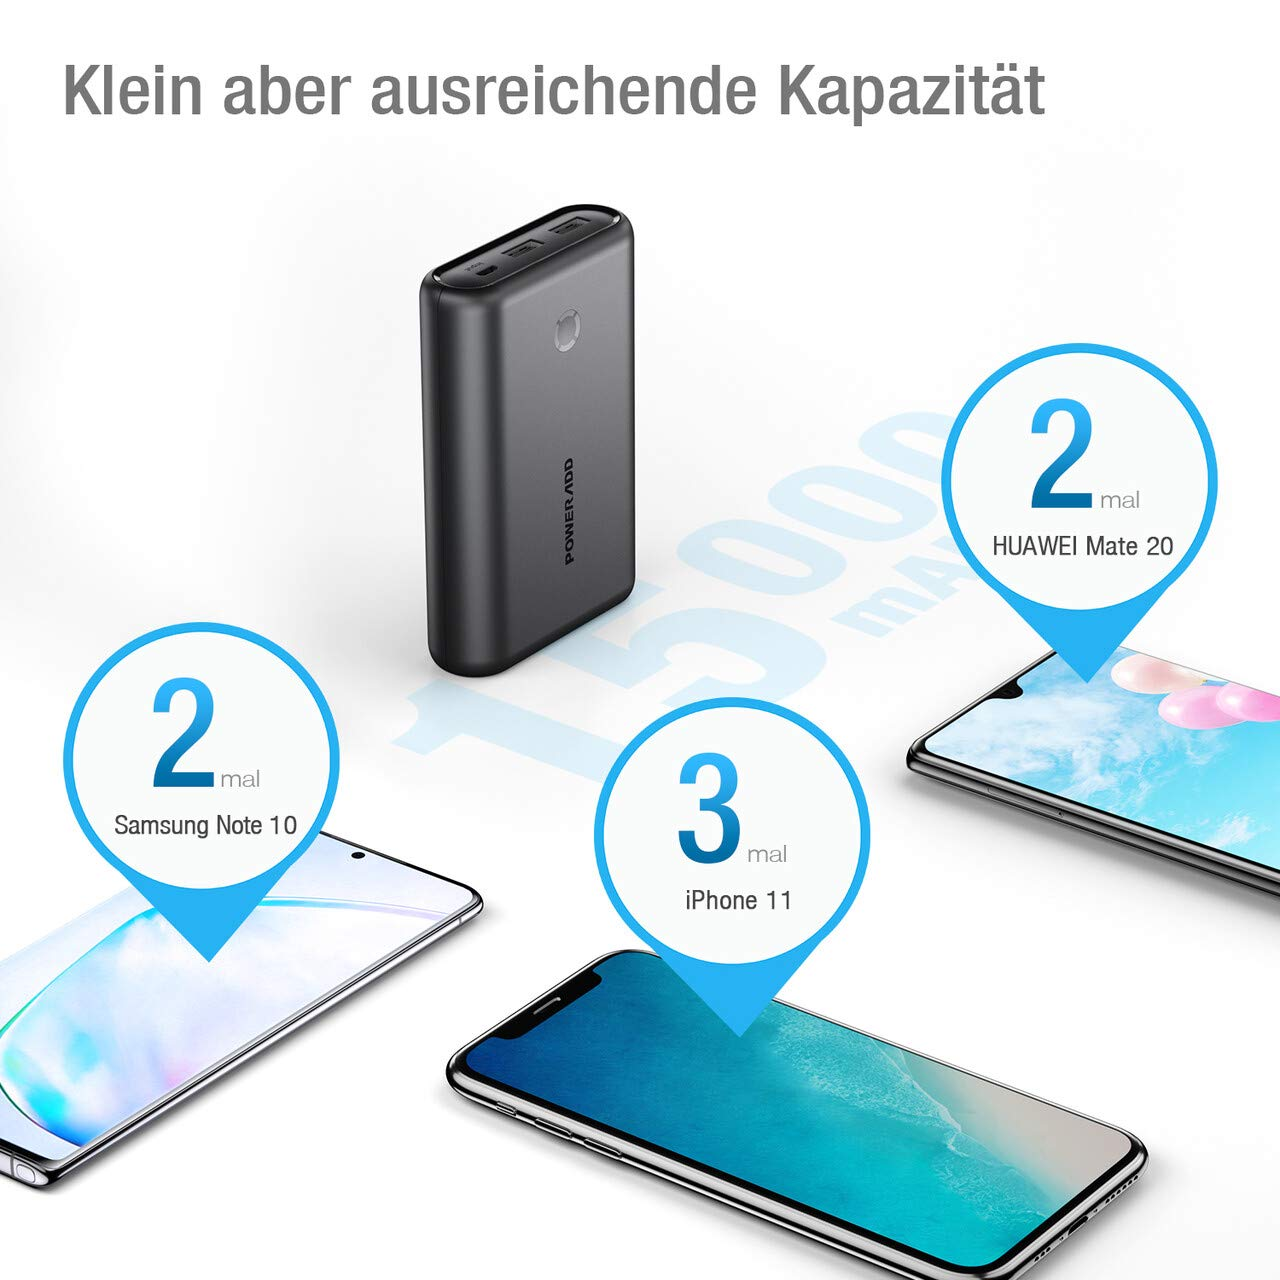 POWERADD EnergyCell Powerbank, 15000mah Externer Akku, Mini Portable Power Bank Tragbares Ladegerät für Handy, iPhone, iPad, Samsung Galaxy Huawei und weitere Smartphones